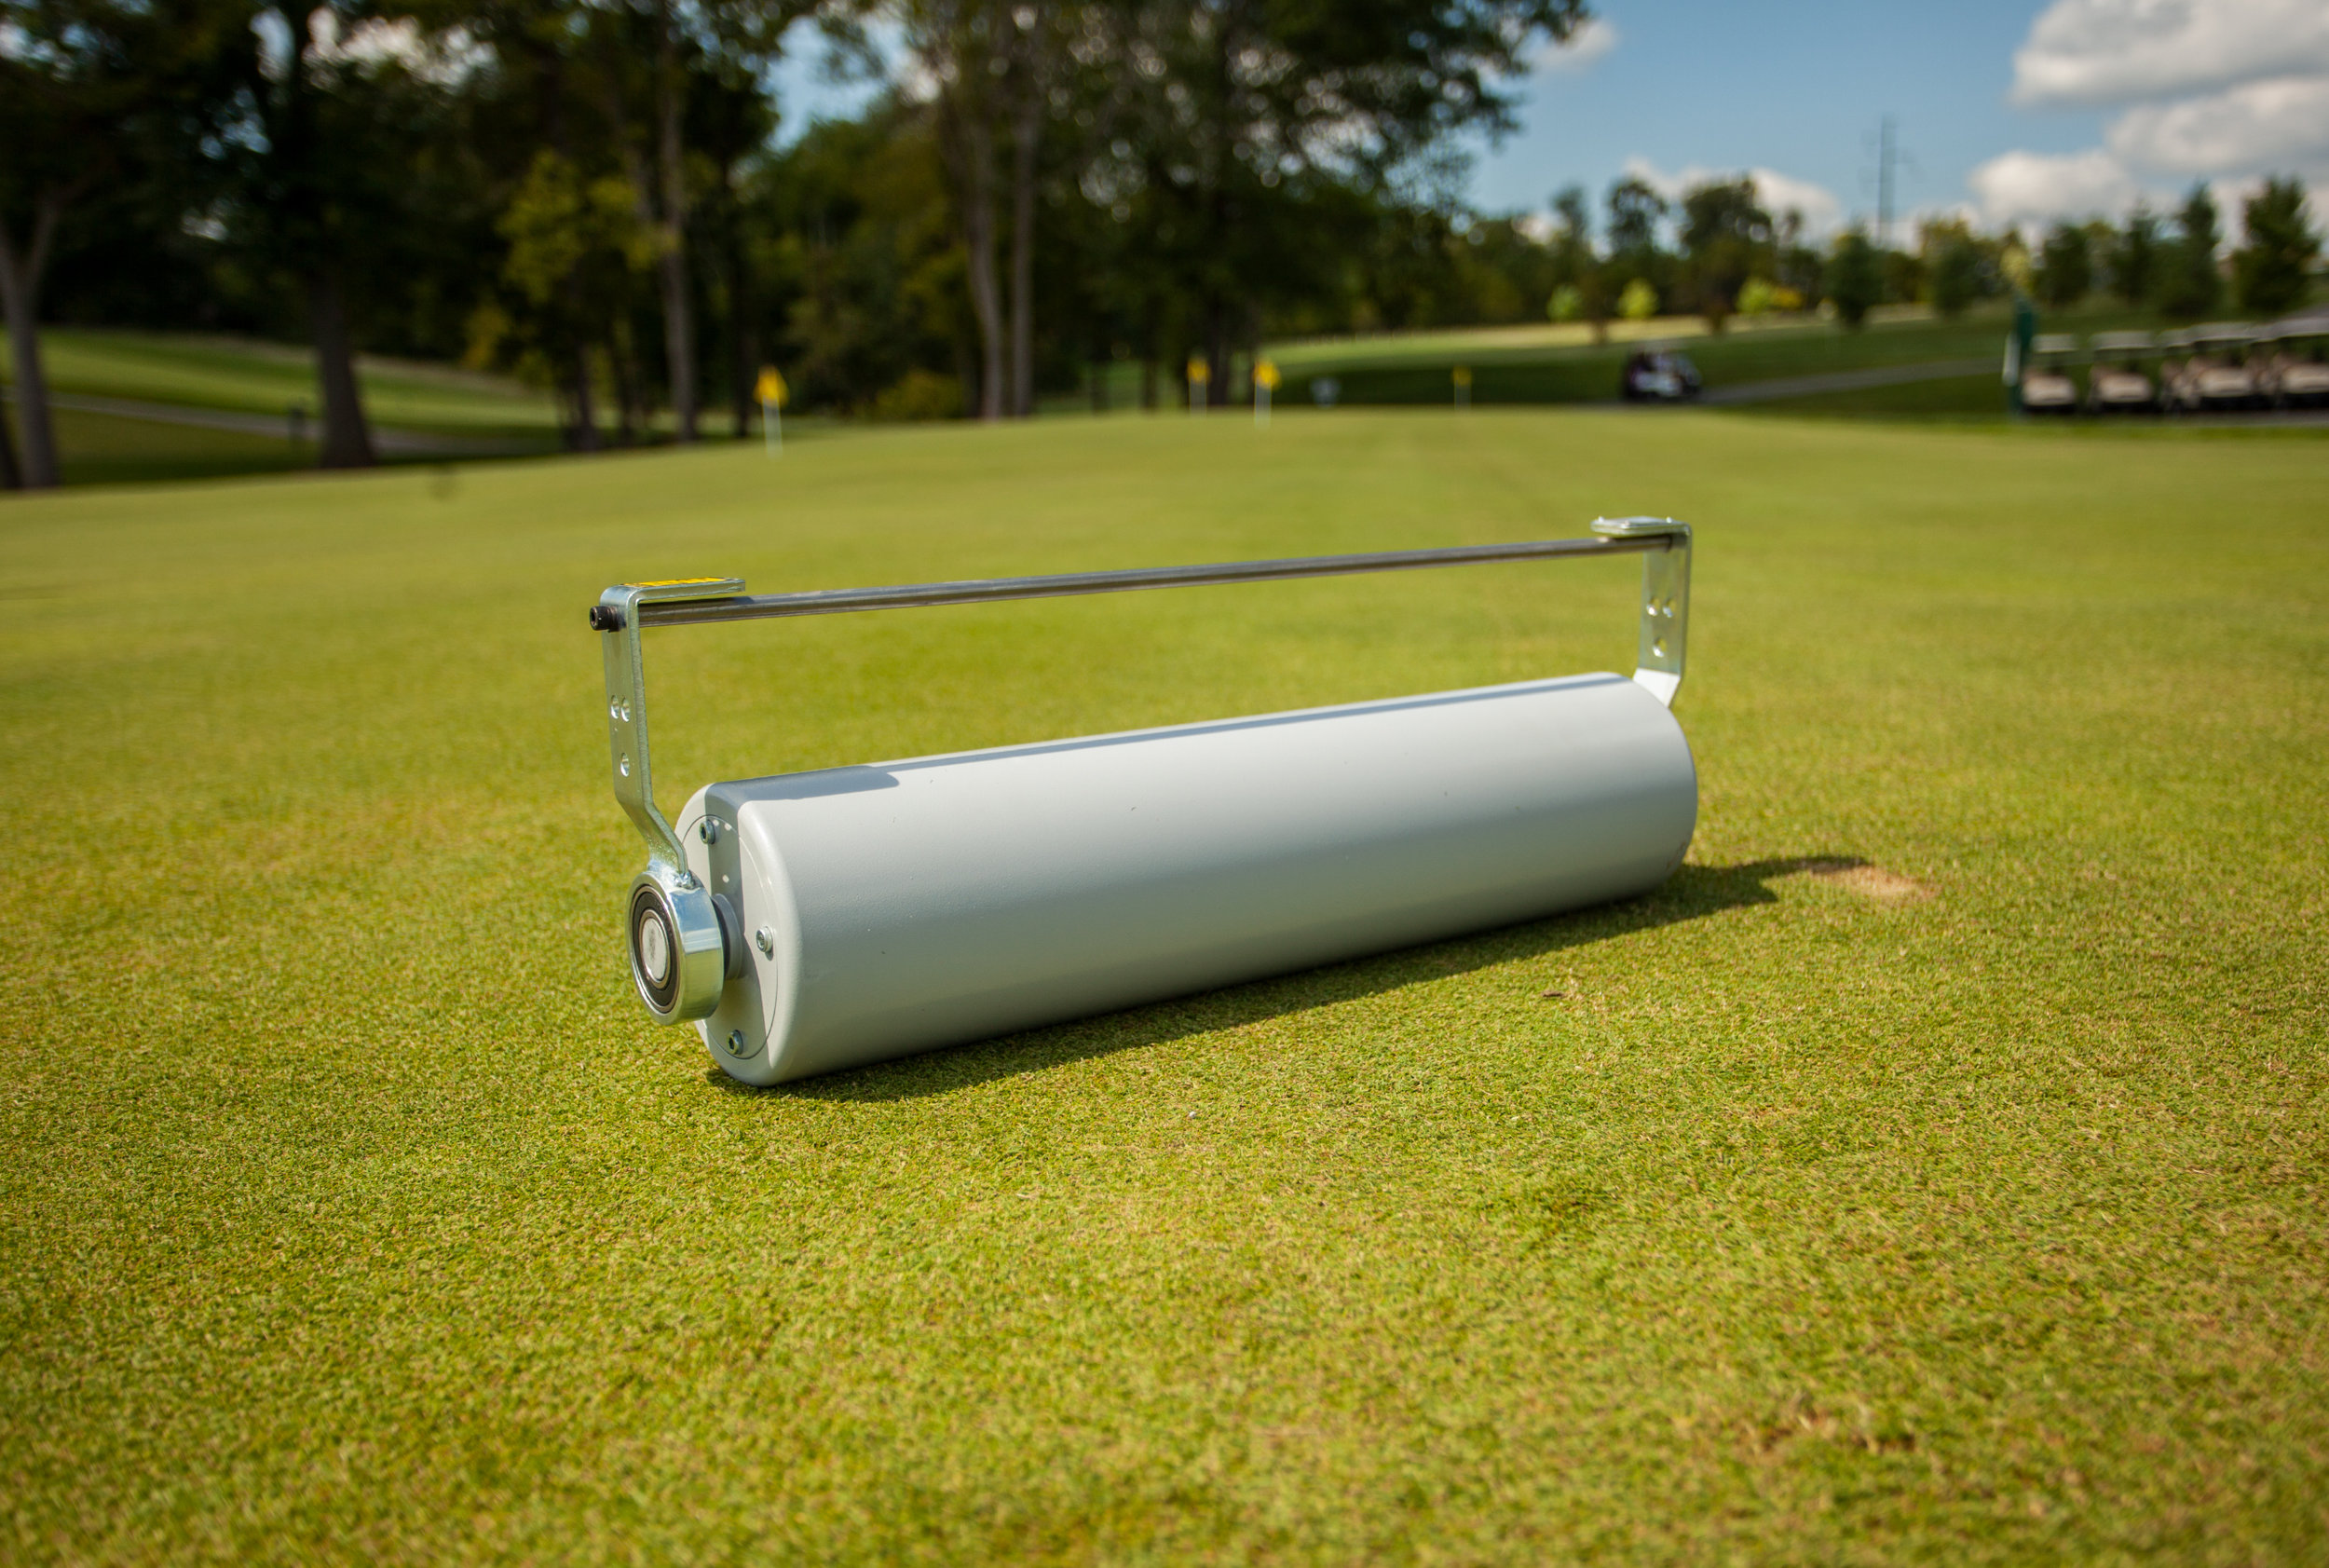 "Non-Vibratory Roller - Use the True-Surface® NV Roller insert as a non-vibratory option to greens rolling at a lower cost. Greens rolling will help you gain green speeds, smooth the turf, and raise your mowing height of cut.Roller Type: Non-vibratory greens rollerRoller Size: 5"" (127mm) diameter; 1"" (25.4mm) steel wall tube; 3"" (76.2mm) diameter removable weight barWeight: 74 lbs (33.6 kg) per roller; additional 38 lbs (17.2 kg) removable weight bar"